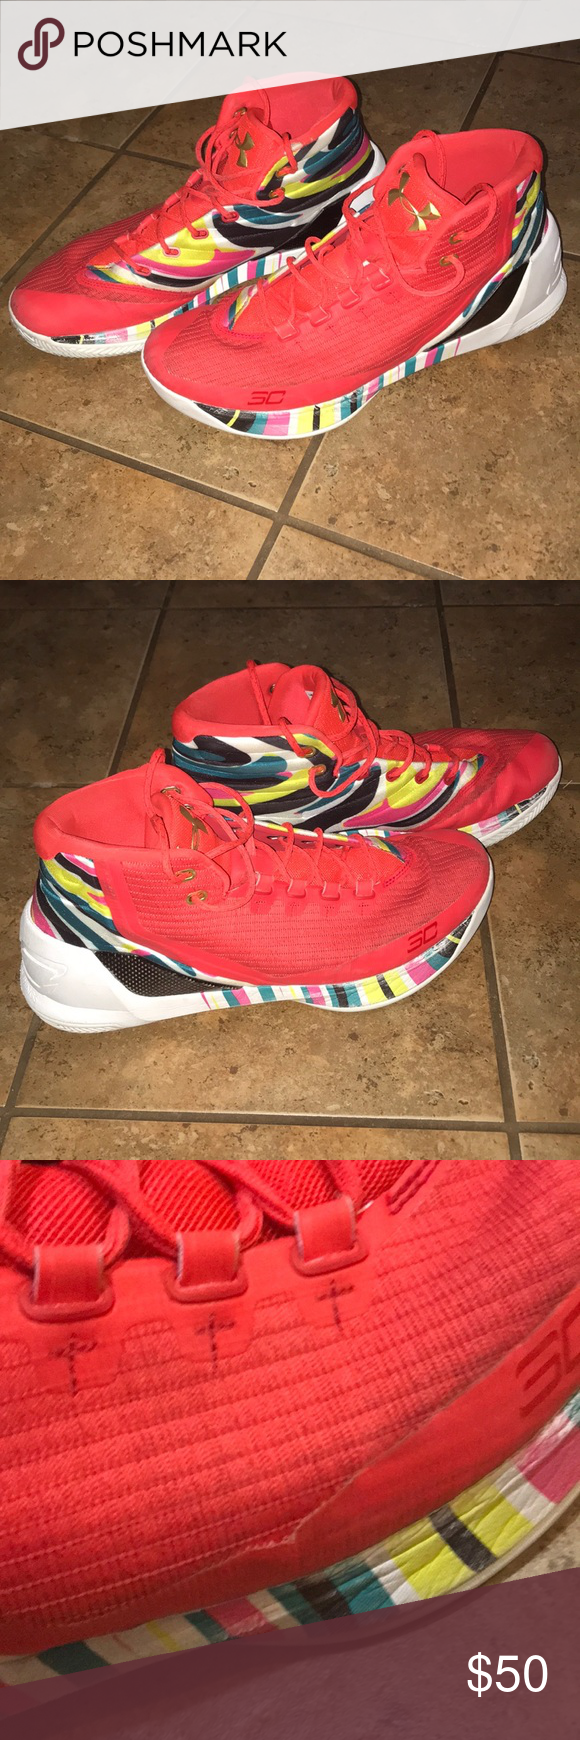 b565fd530ca3 Under Armour UA Steph Curry 3 Chinese New Year CNY Under Armour UA Steph  Curry 3